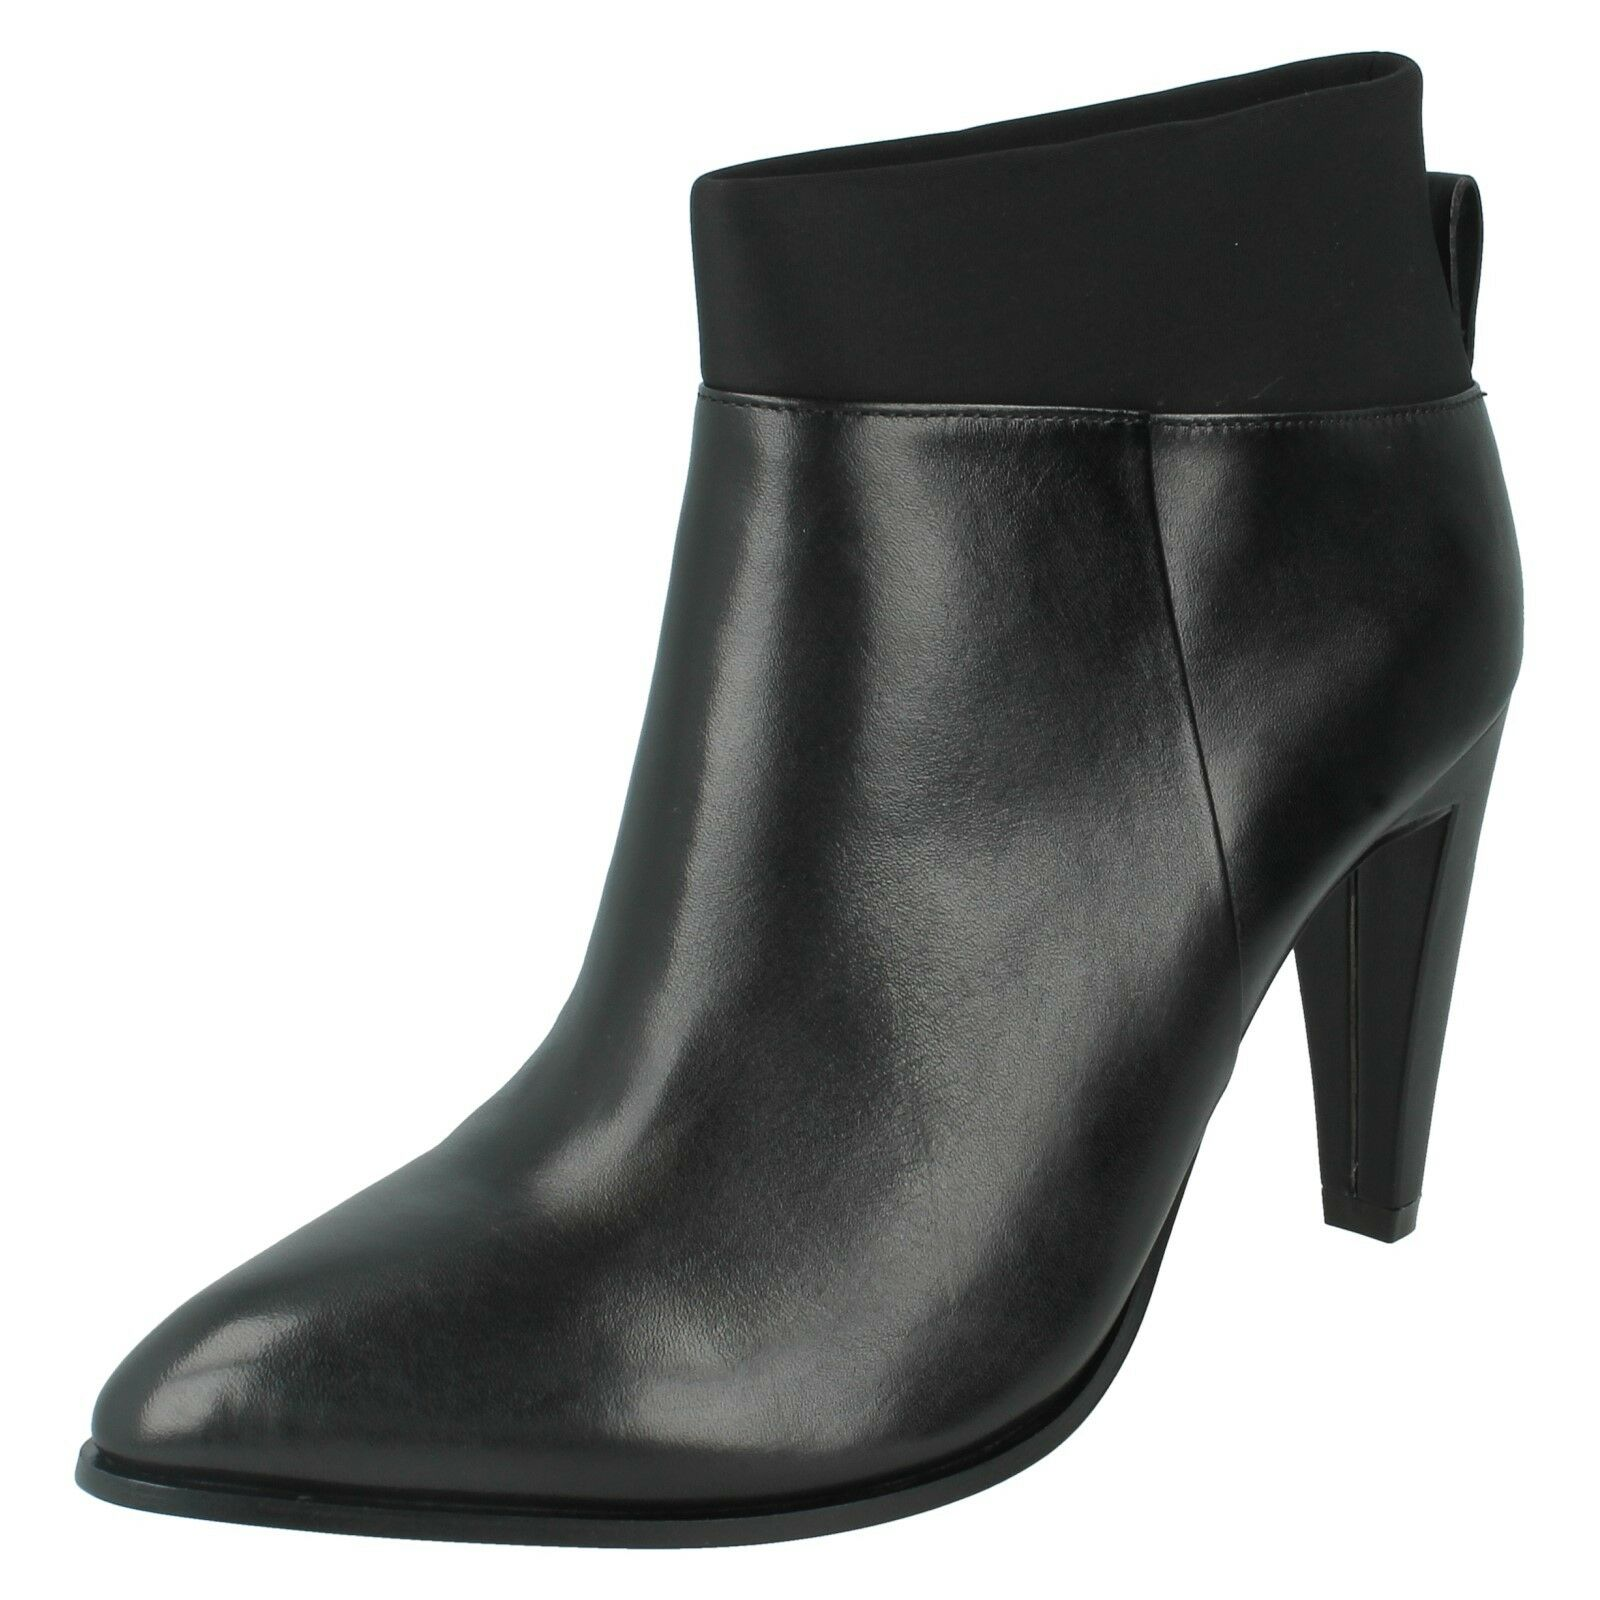 LADIES CLARKS AZIZI POSEY LEATHER POINTED TOE HIGH HEEL CLASSIC ANKLE BOOTS